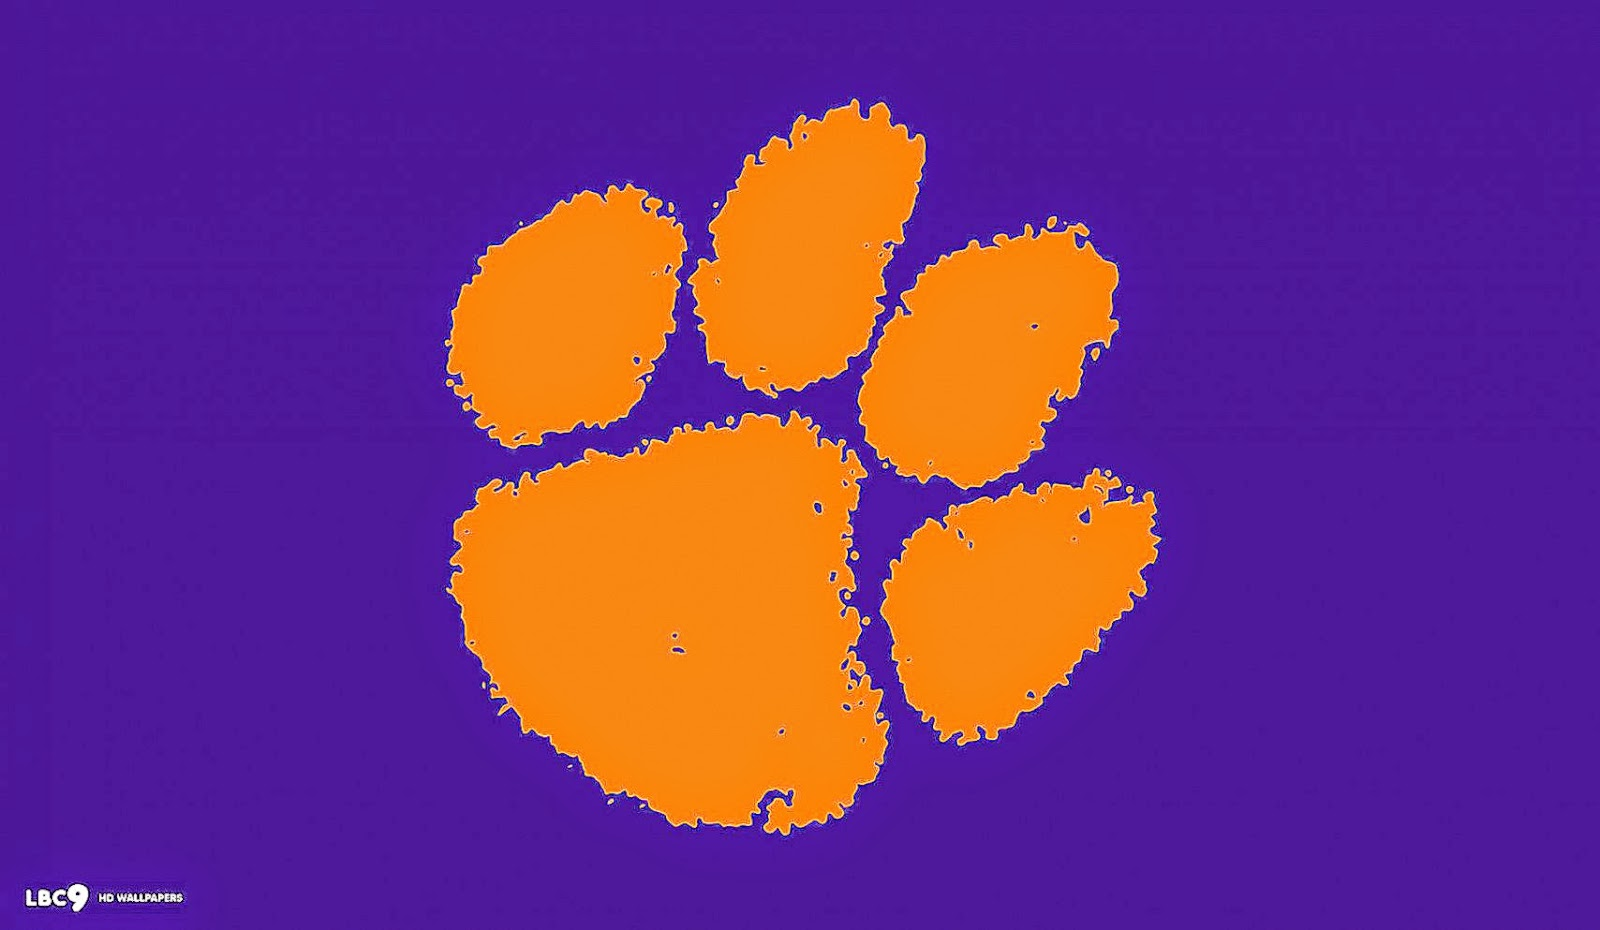 clemson tigers wallpaper 12 college athletics hd backgrounds 1600x930